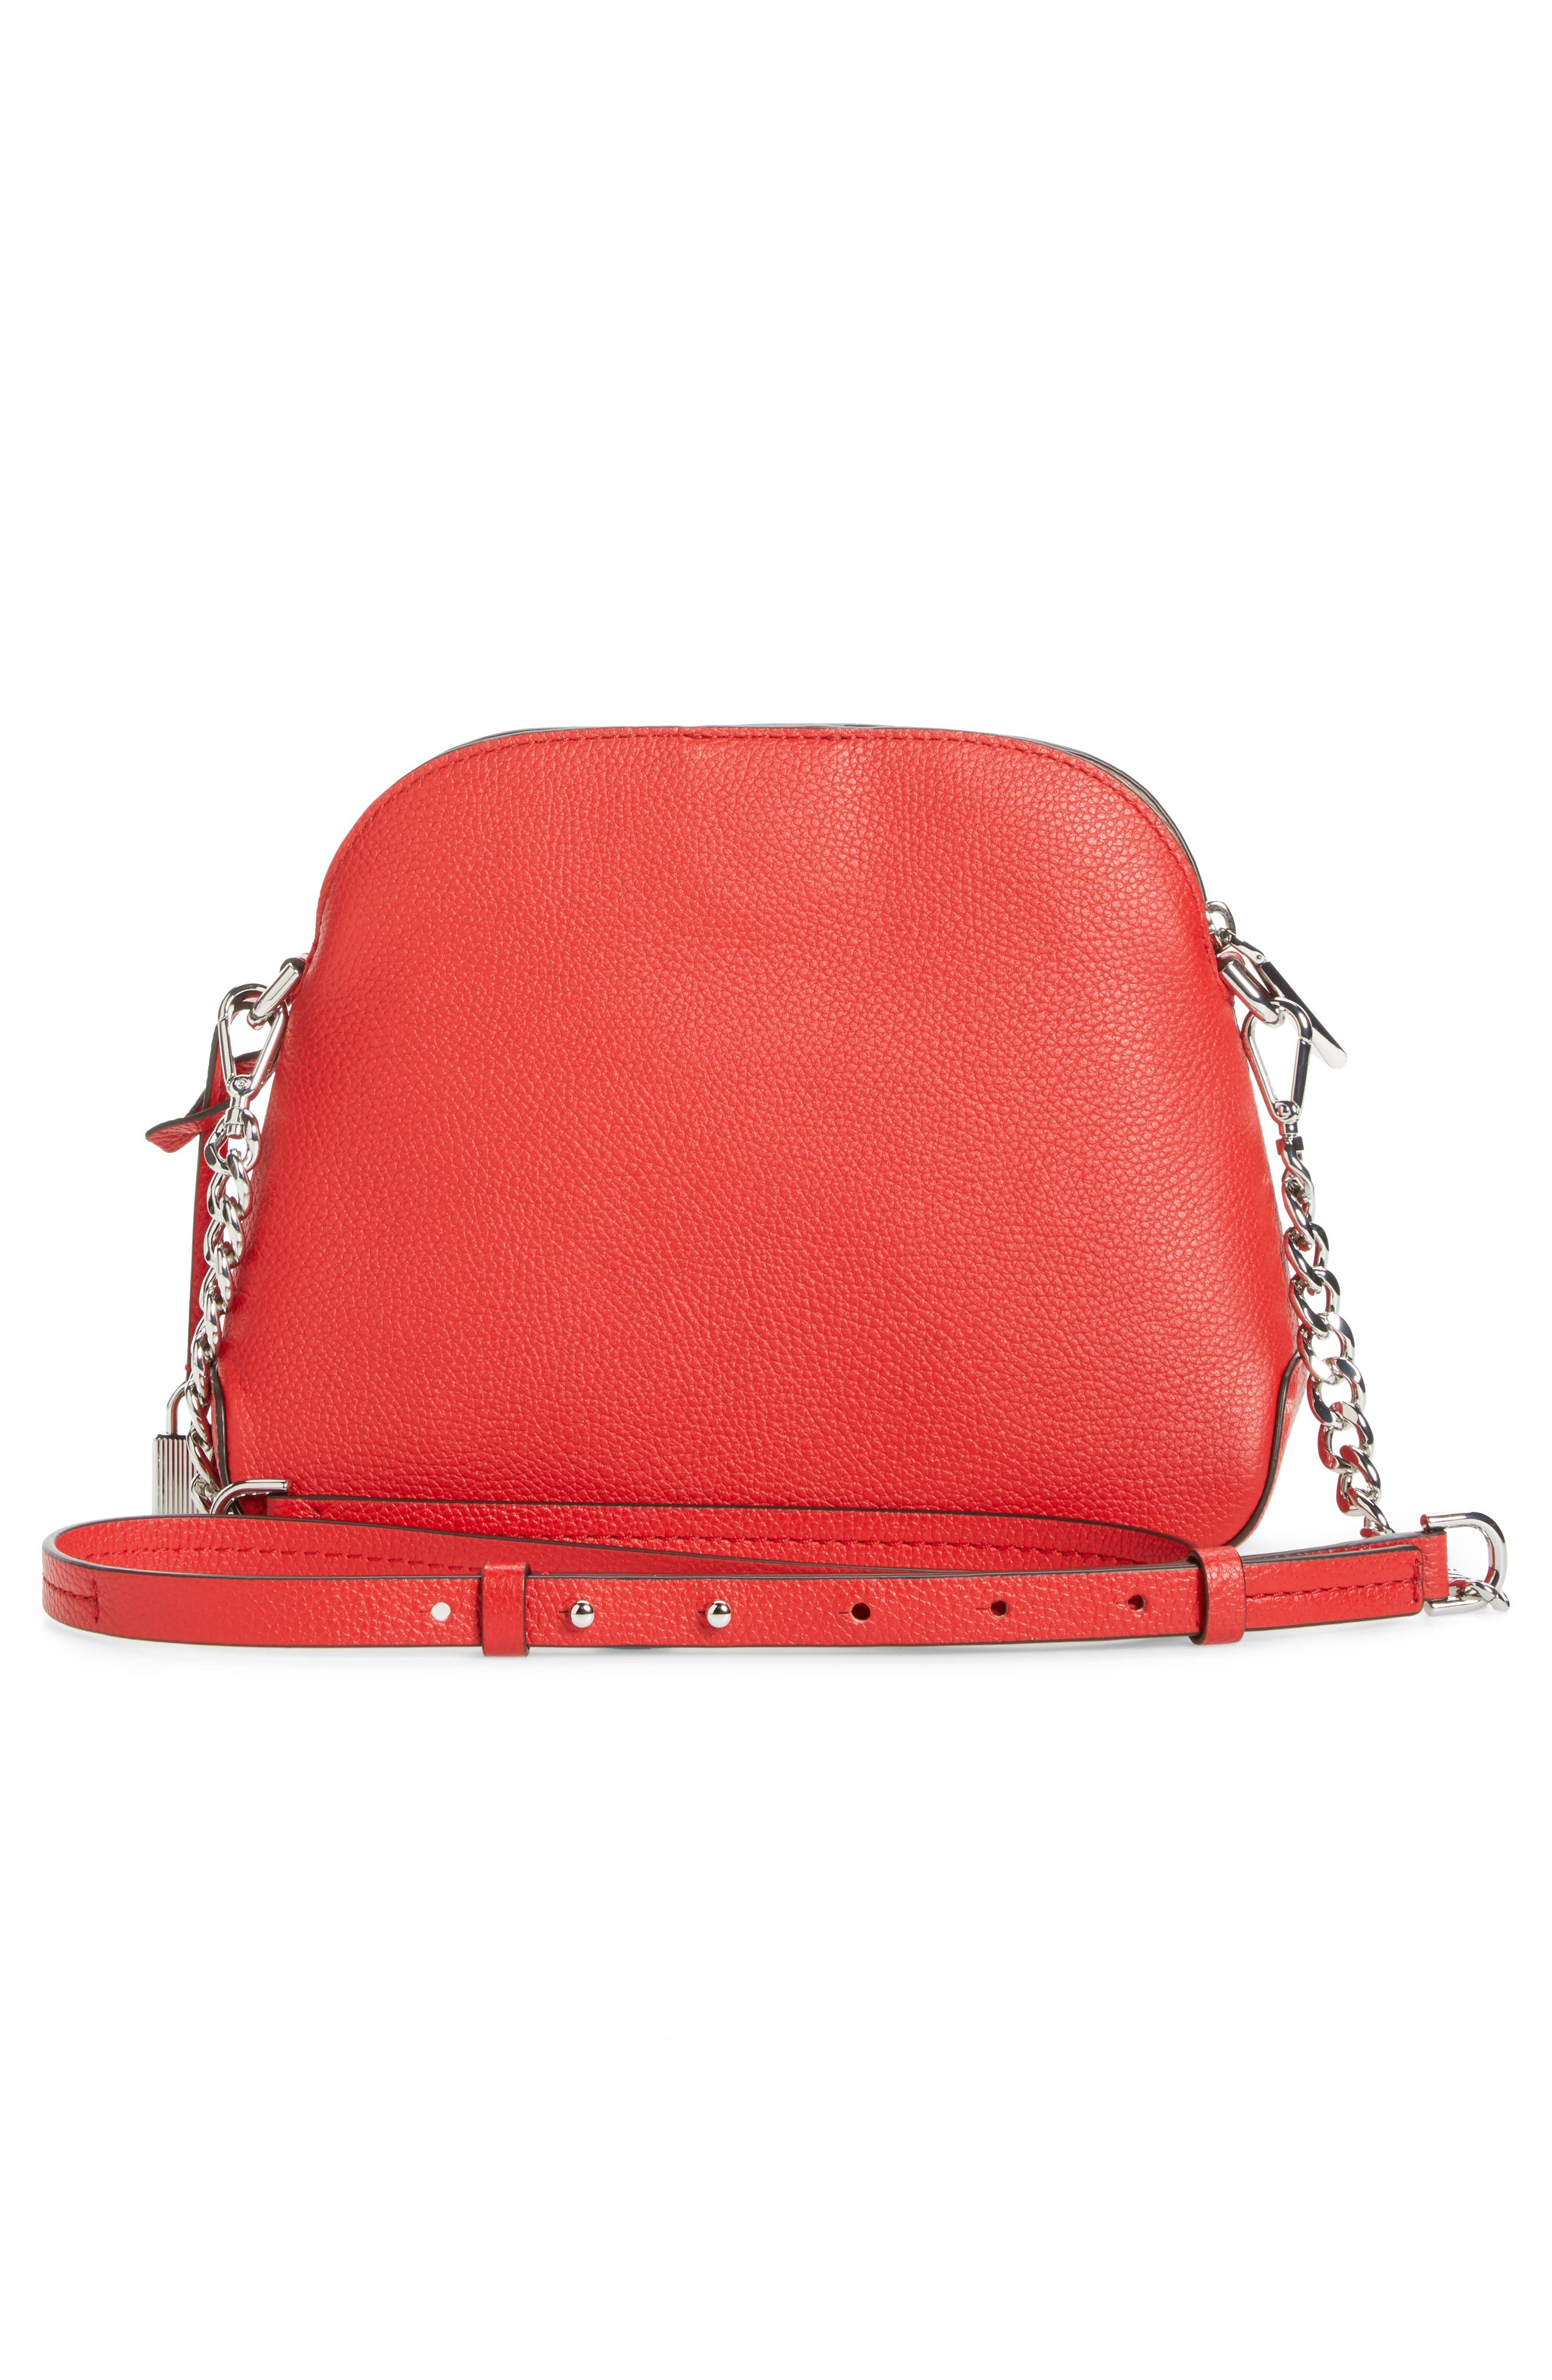 Alternate Image 2  - MICHAEL by Michael Kors Medium Mercer Leather Dome Satchel